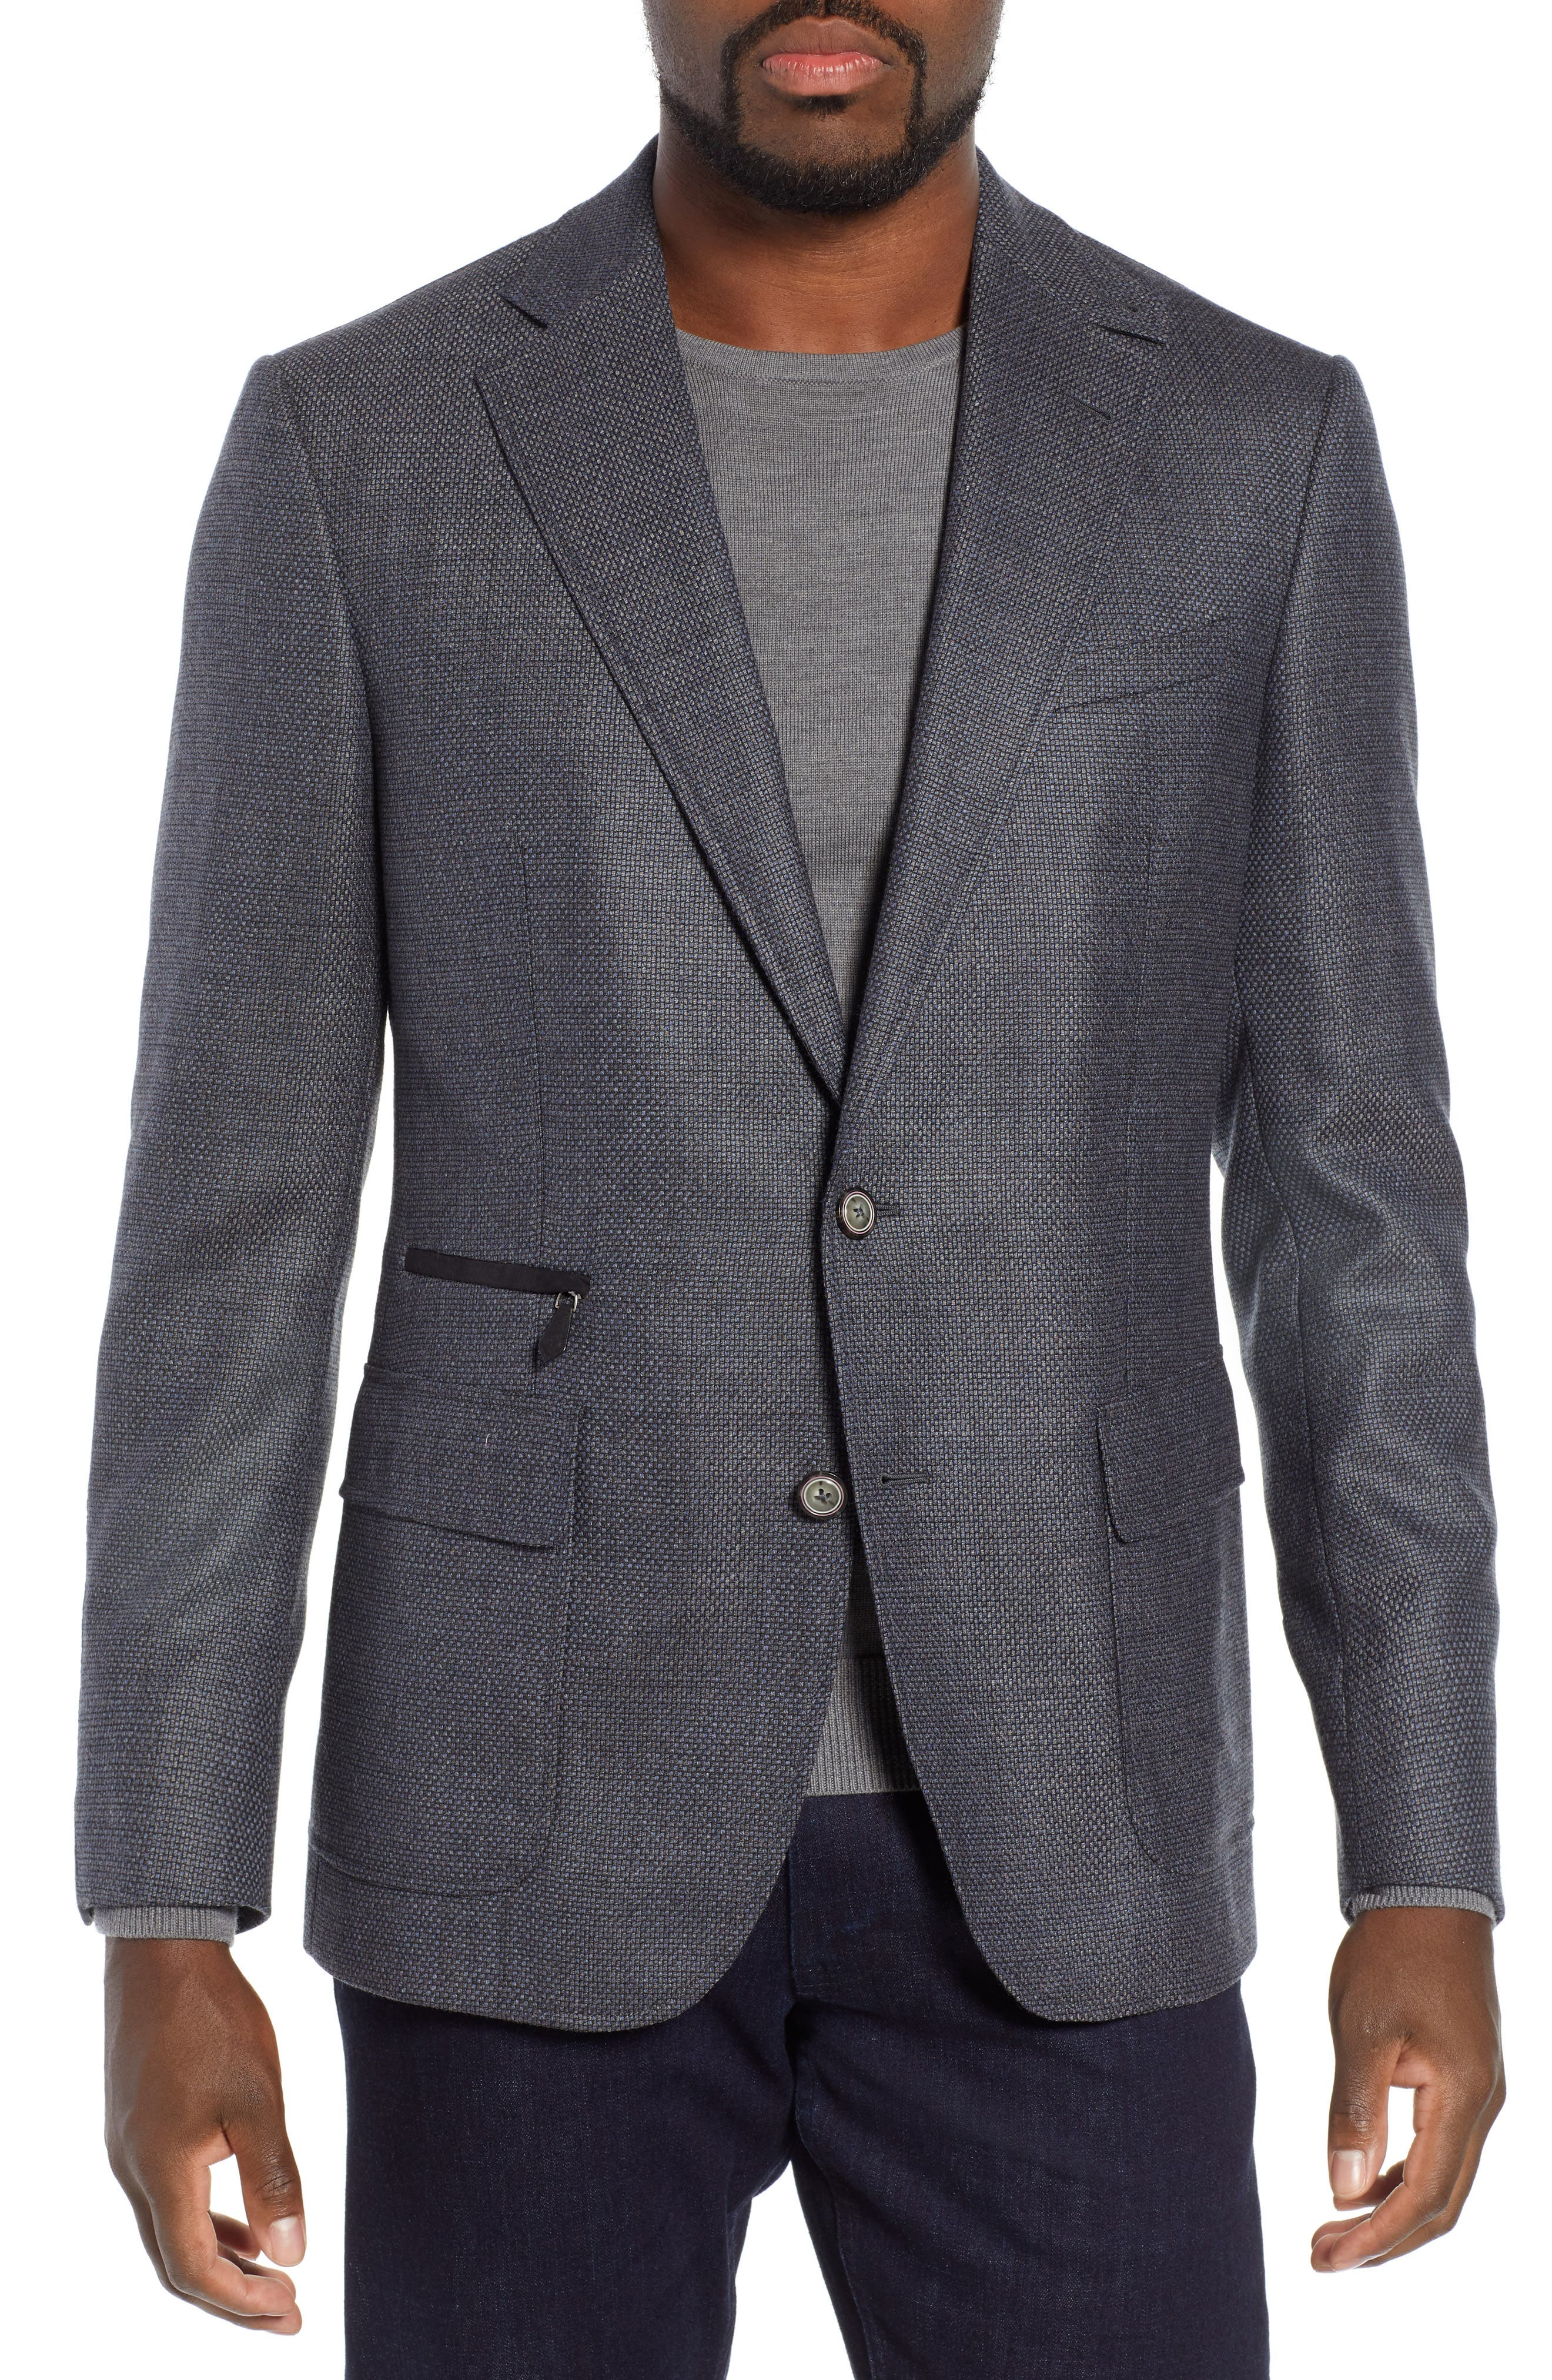 Downhill Sport Coat with Removable Bib,                             Alternate thumbnail 4, color,                             NAVY